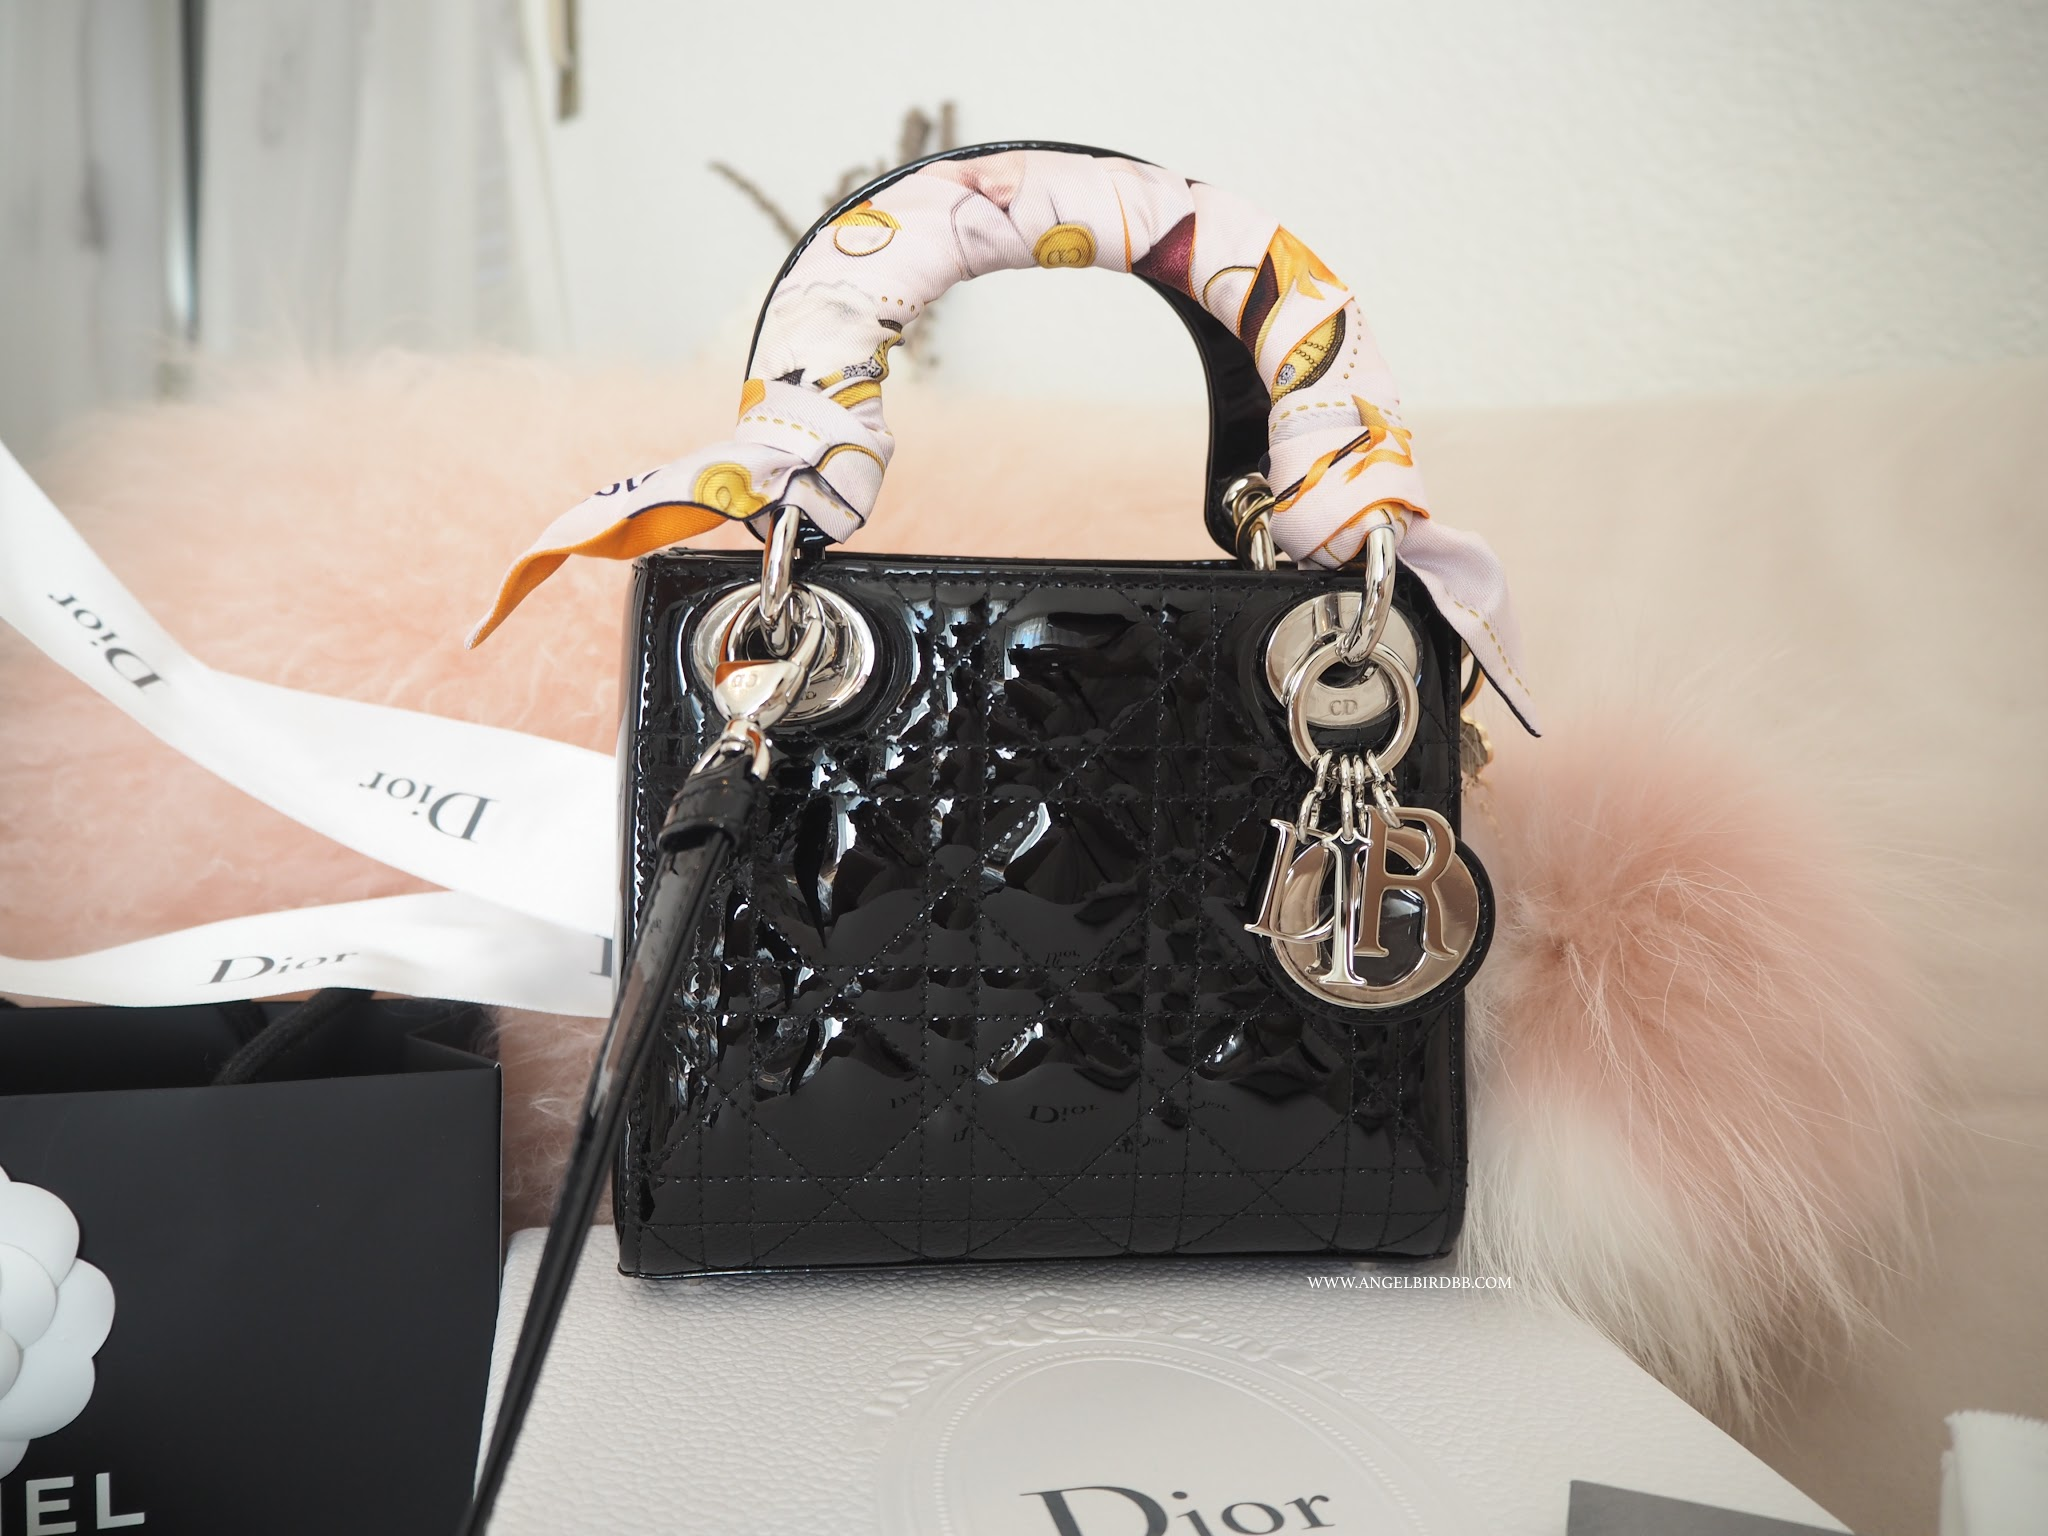 One of my viewer requested some modelling shots with the ladydior mini 8dbbf5c5d7651